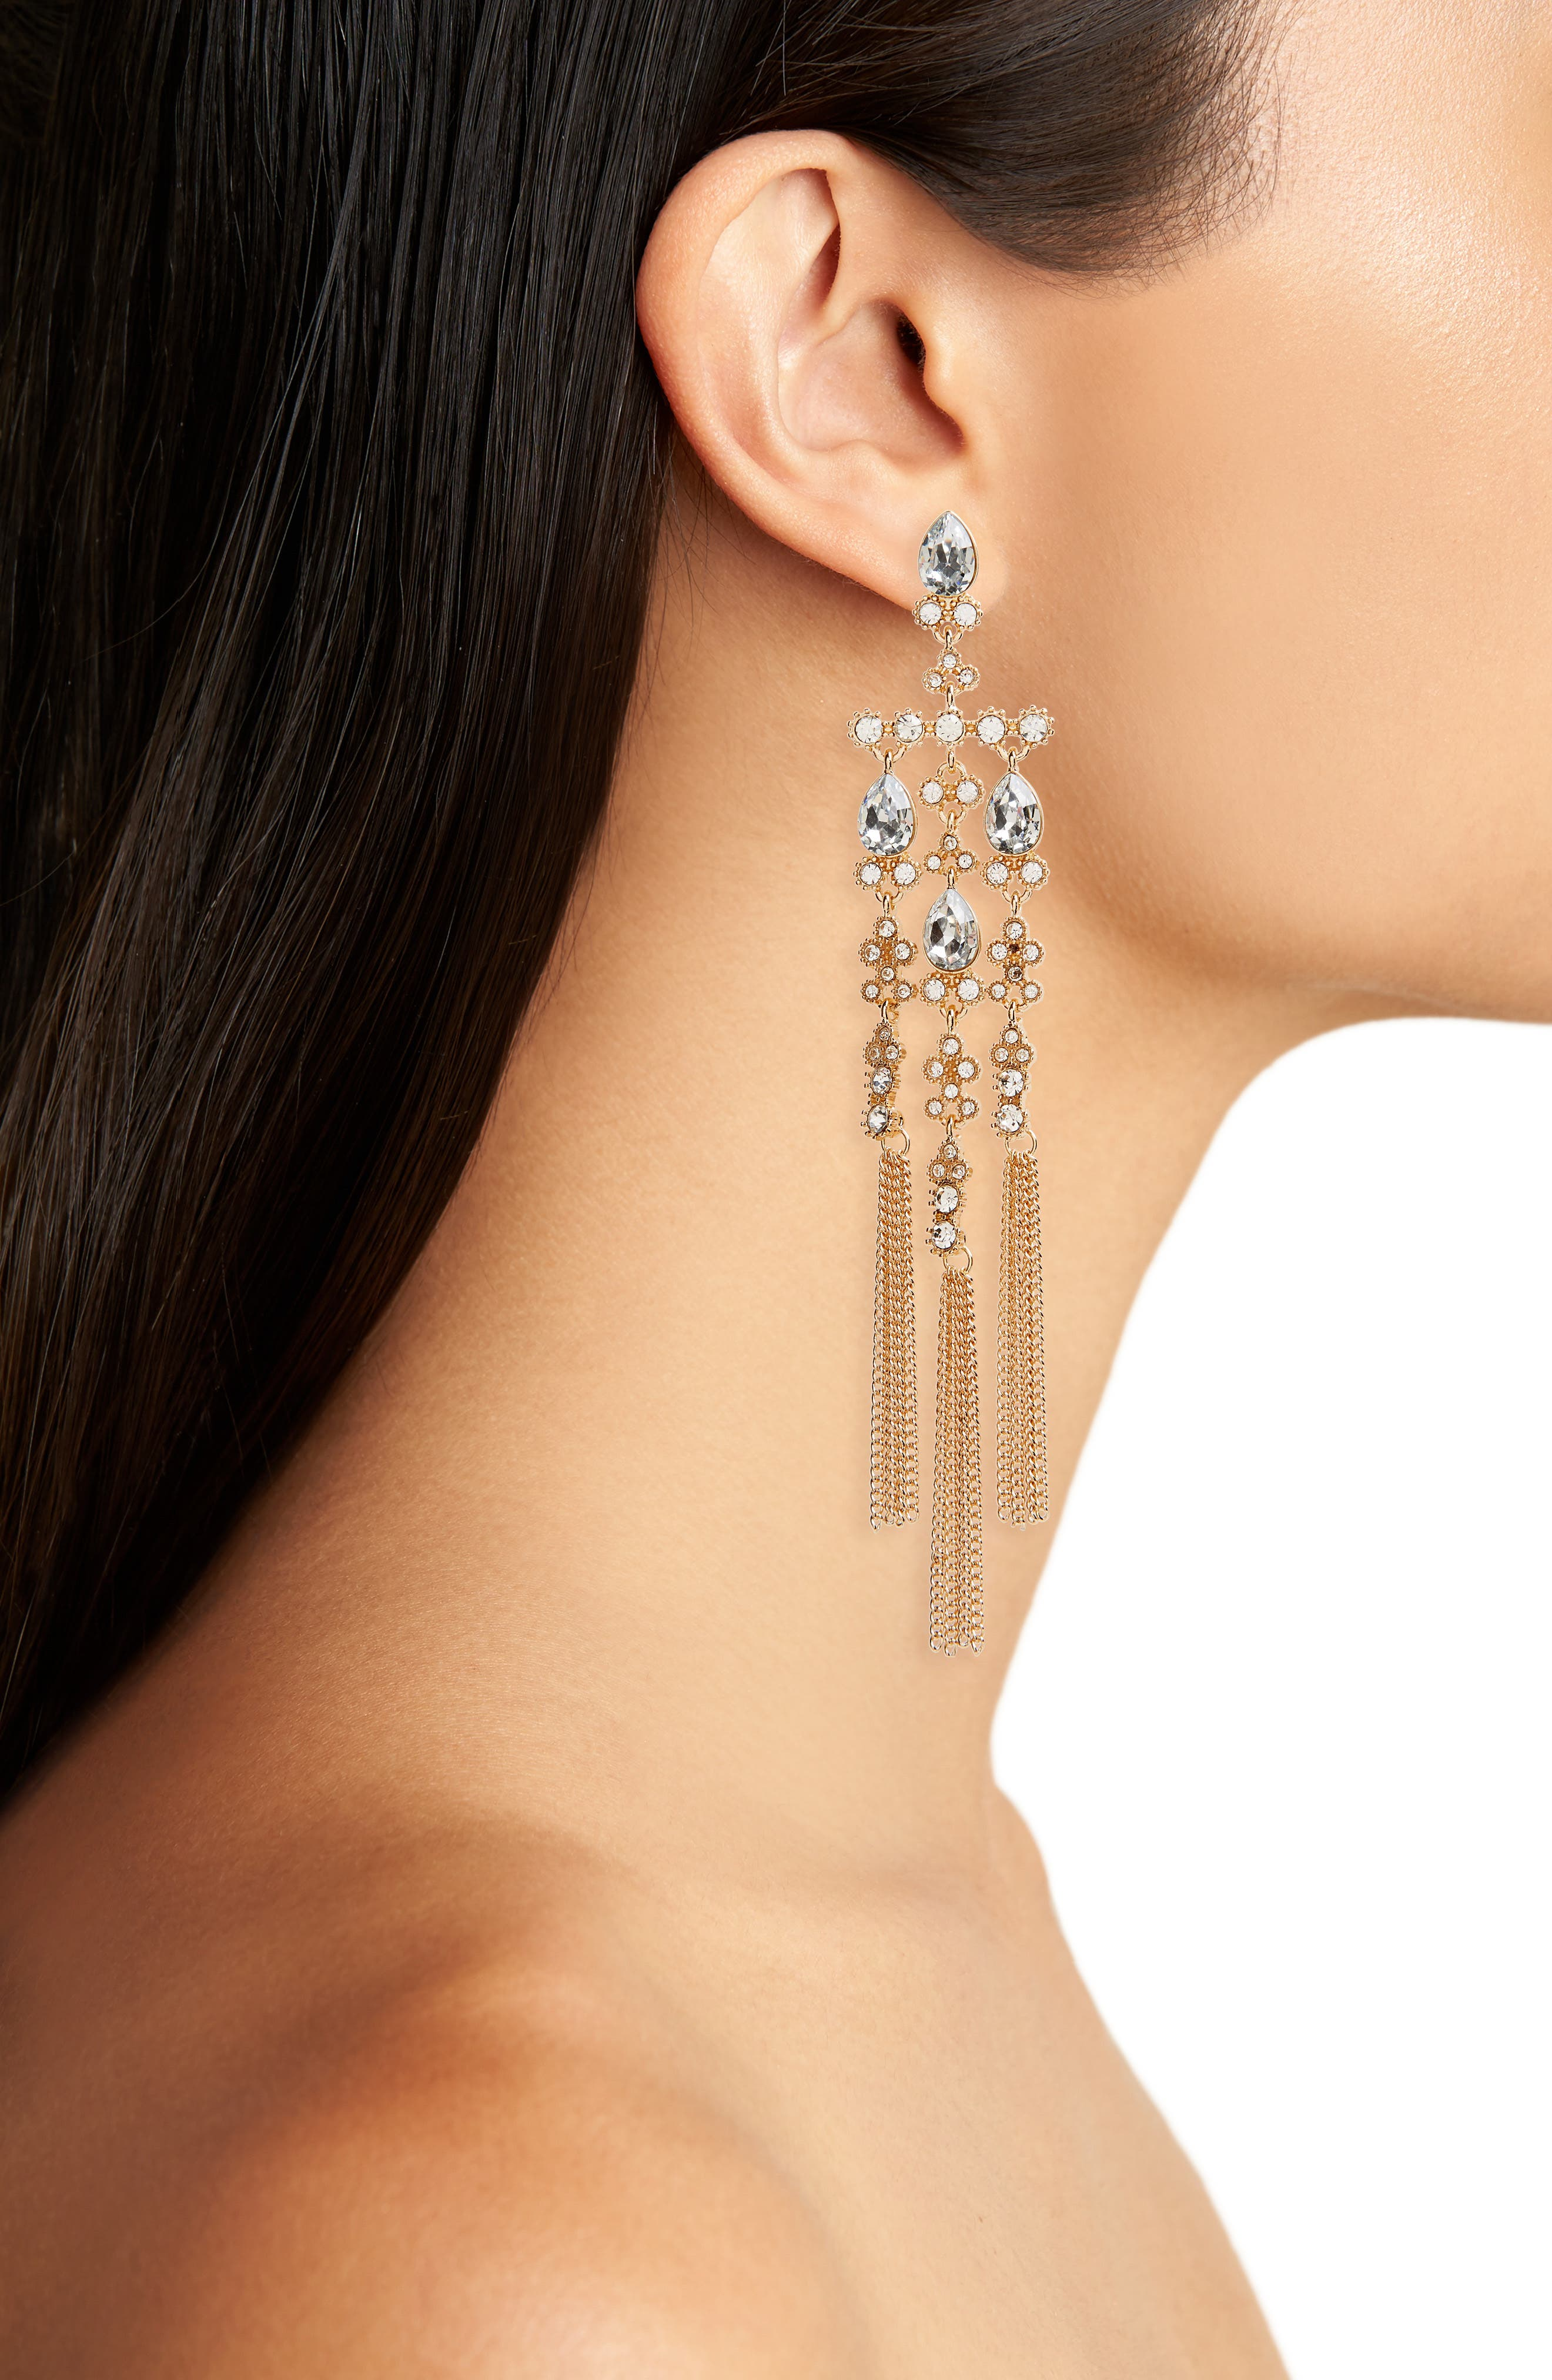 Crystal Chandelier Drop Earrings,                             Alternate thumbnail 2, color,                             Gold/ Crystal/ Blue